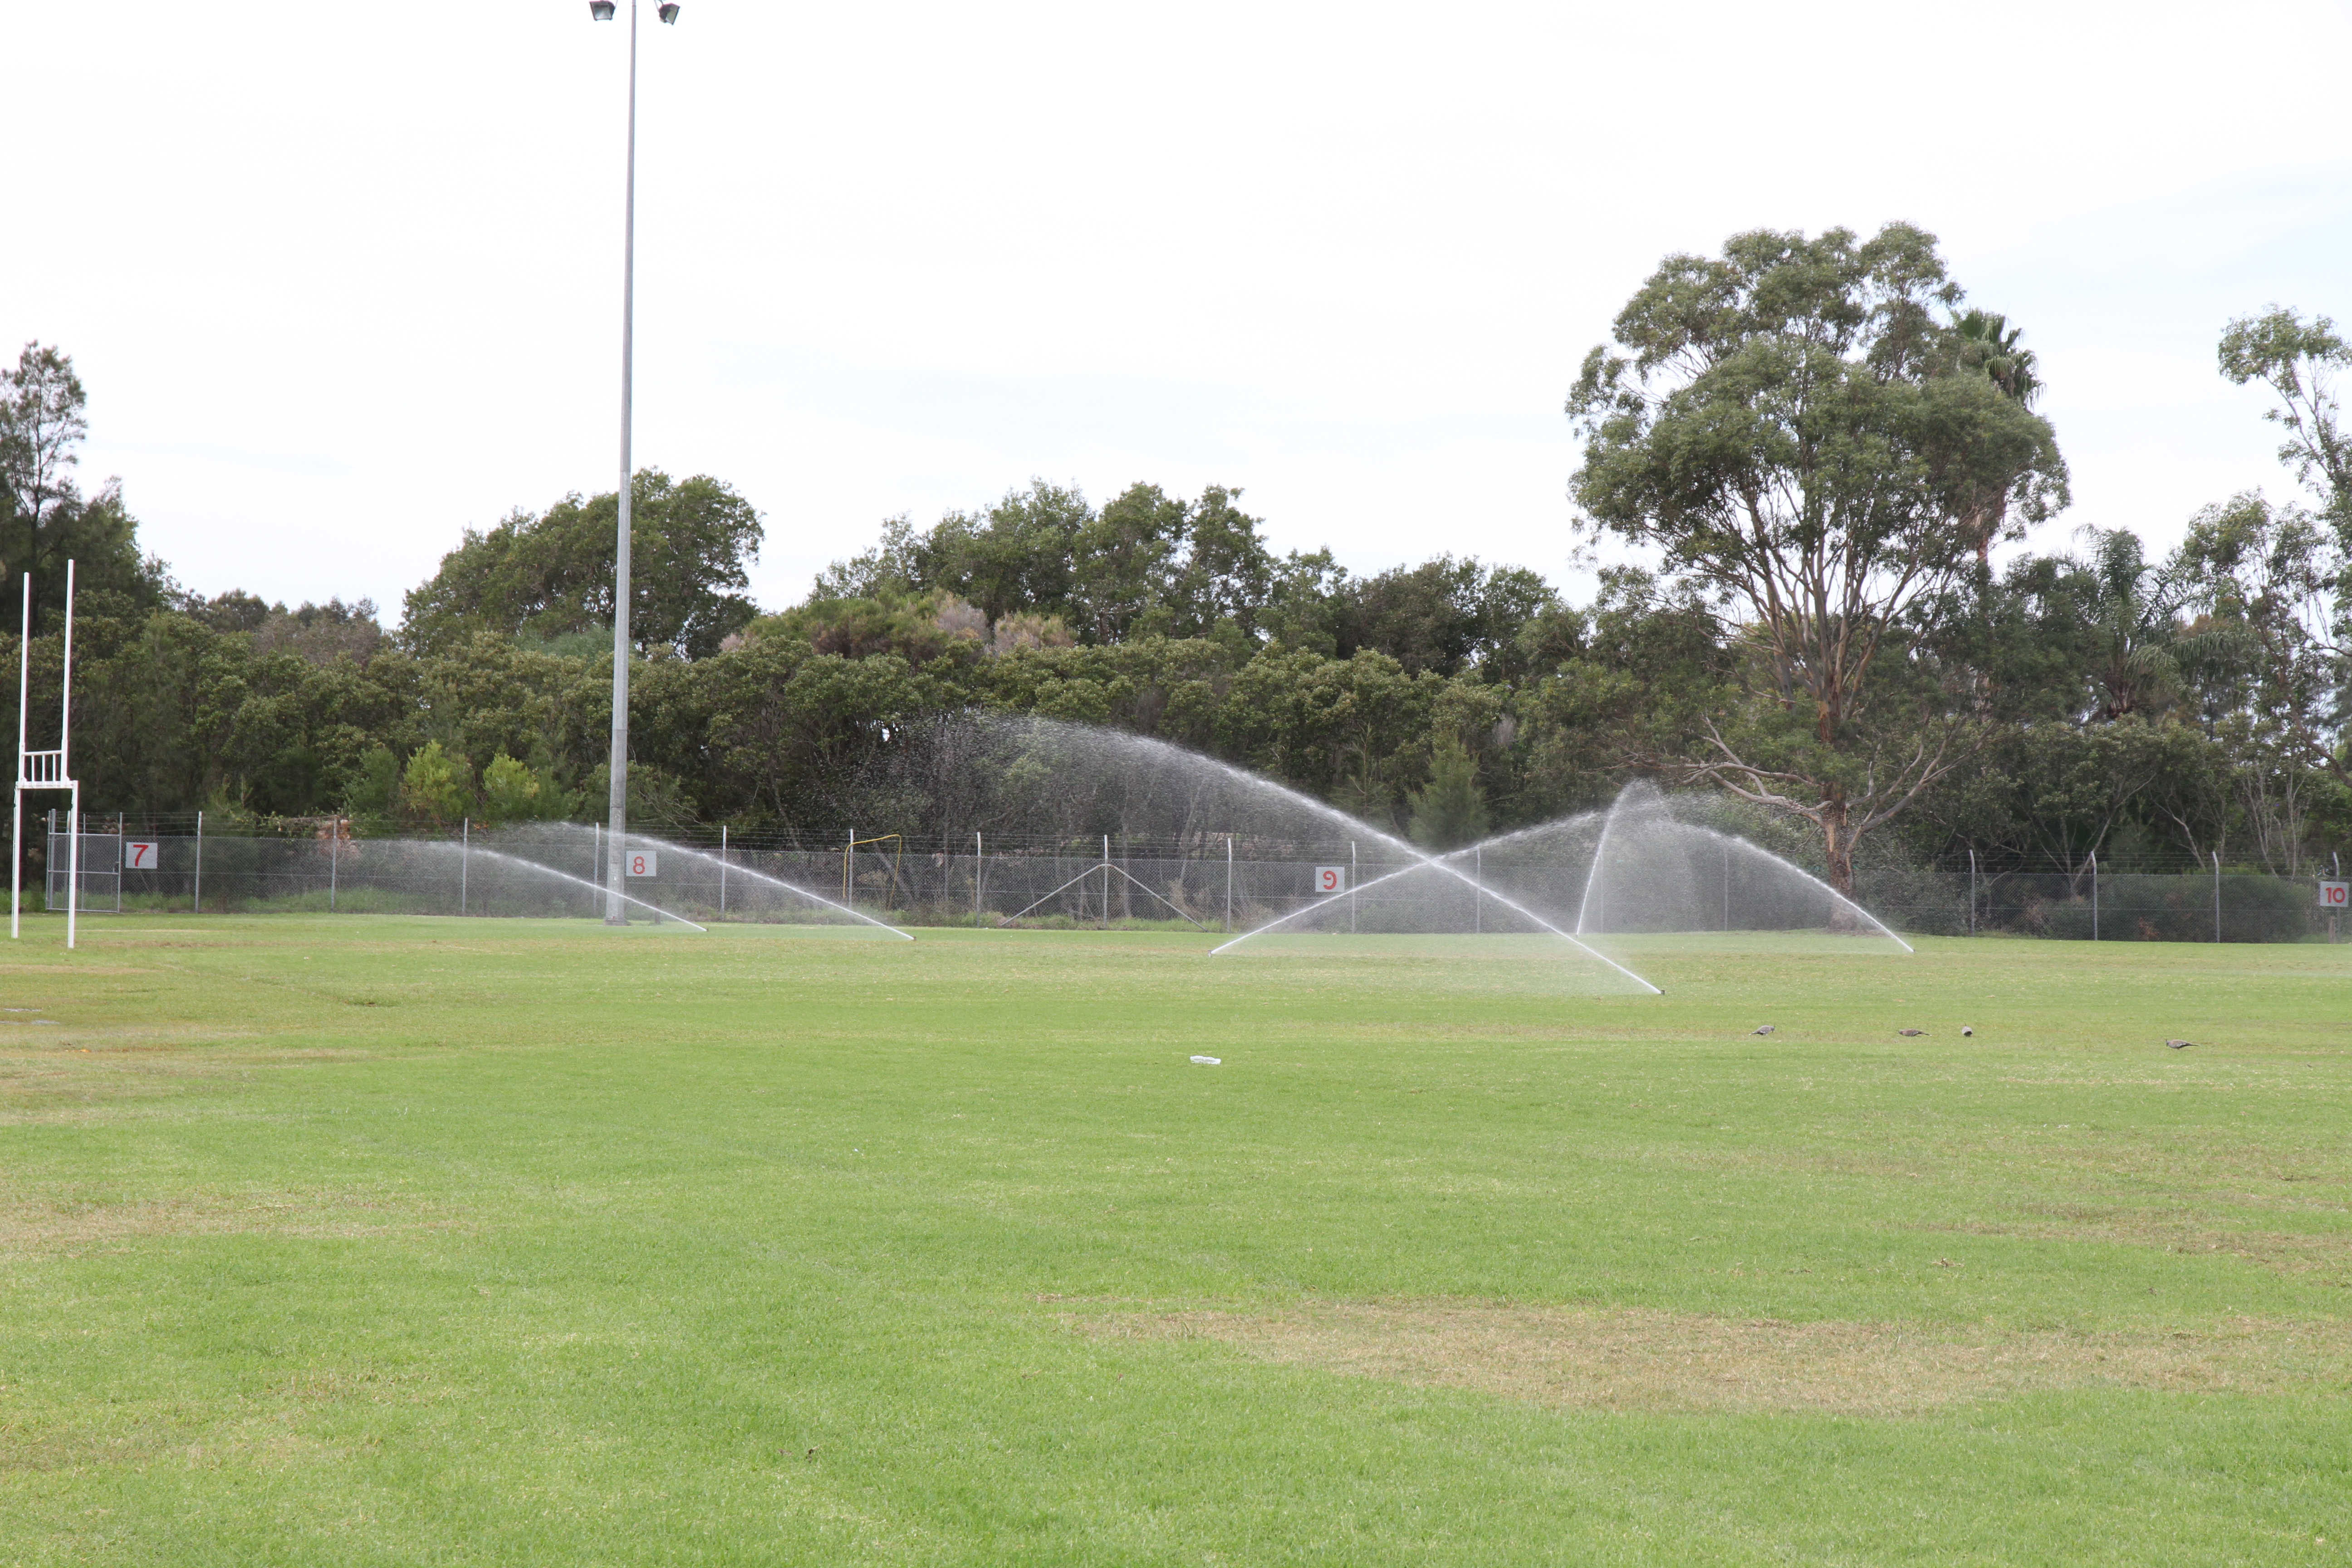 Oval with sprinklers running